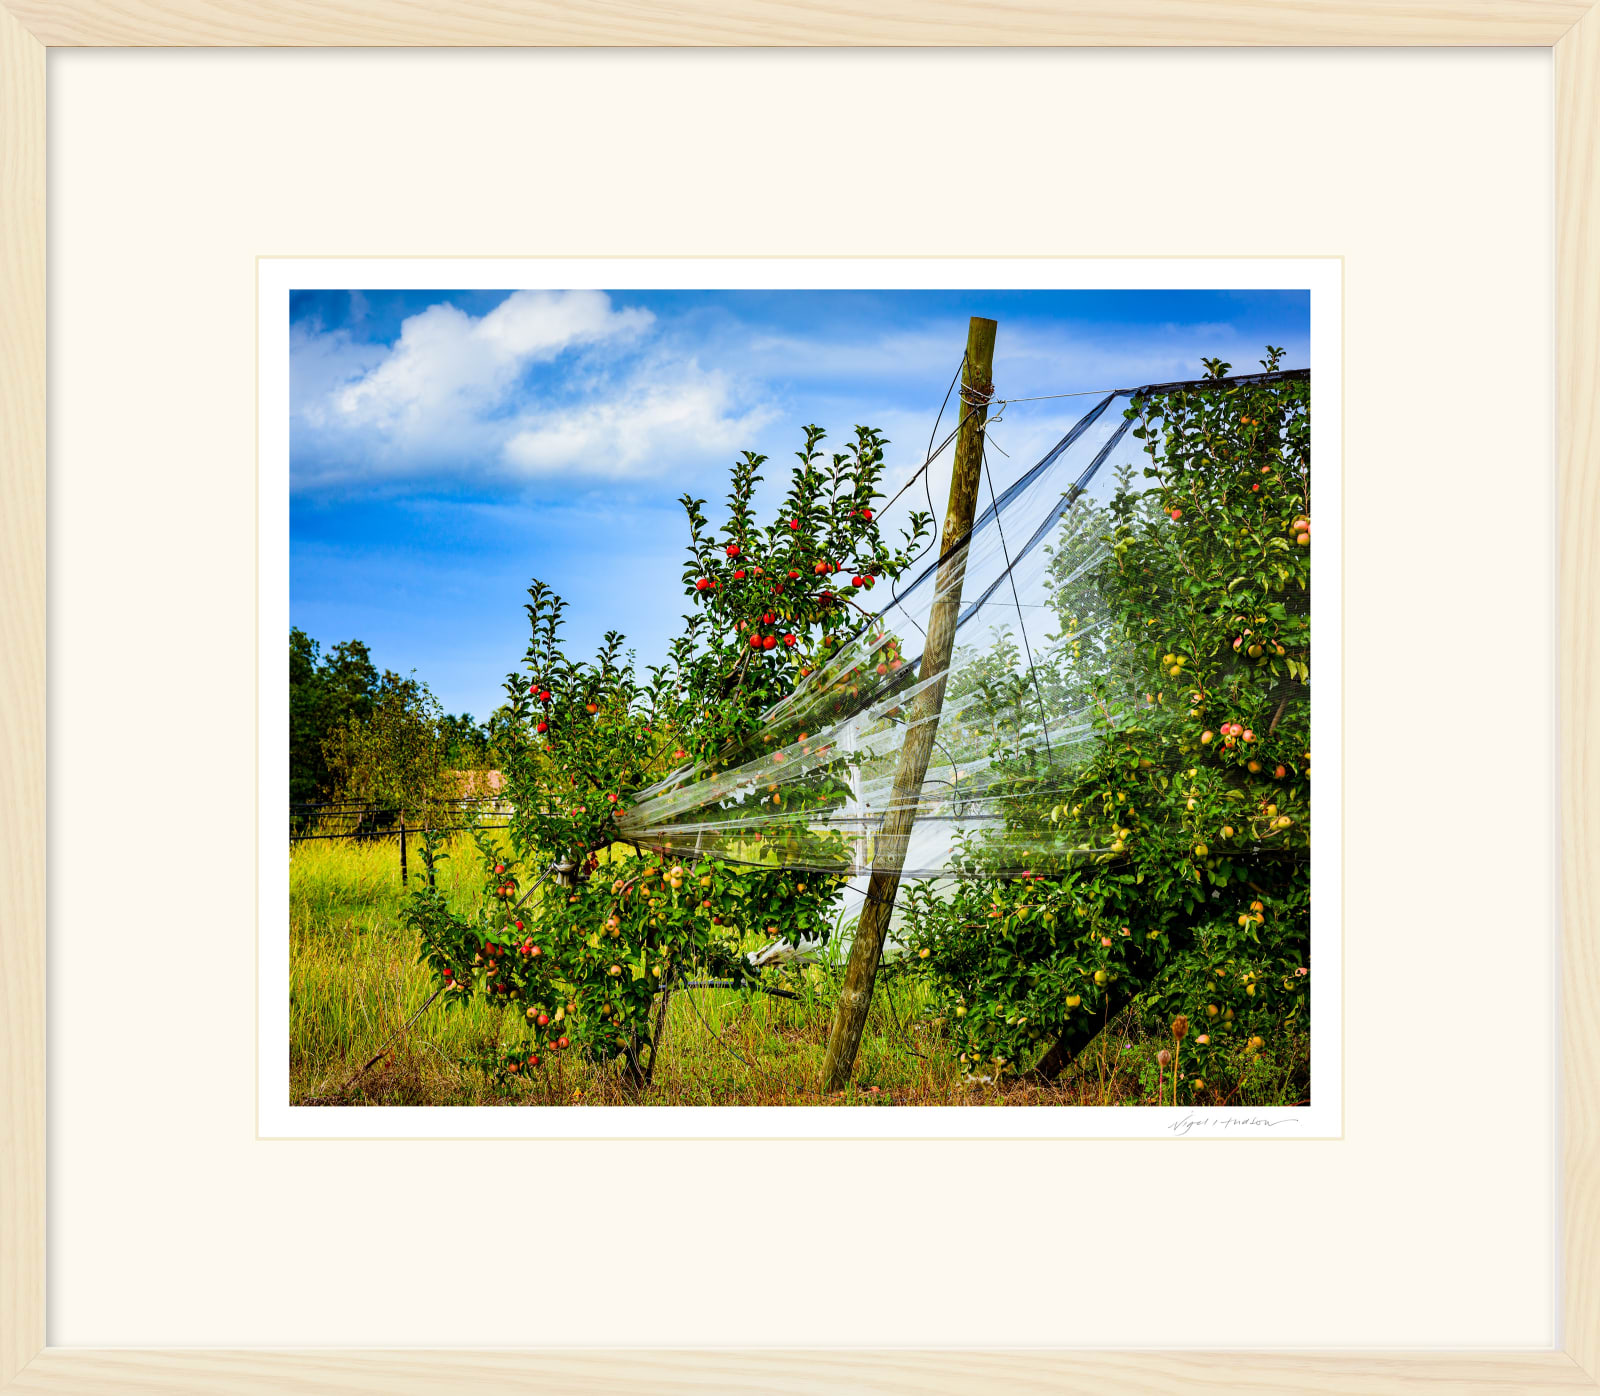 'LOT VALLEY HARVEST' Archival Pigment Print on Platinum Etching Fine Art Paper. Framed in an Limed Ash Cushion Frame and protected with crystal clear Water White Glass. Available in an edition of 3 in three sizes. Prices from £245.00 including first class courier delivery within five working days.